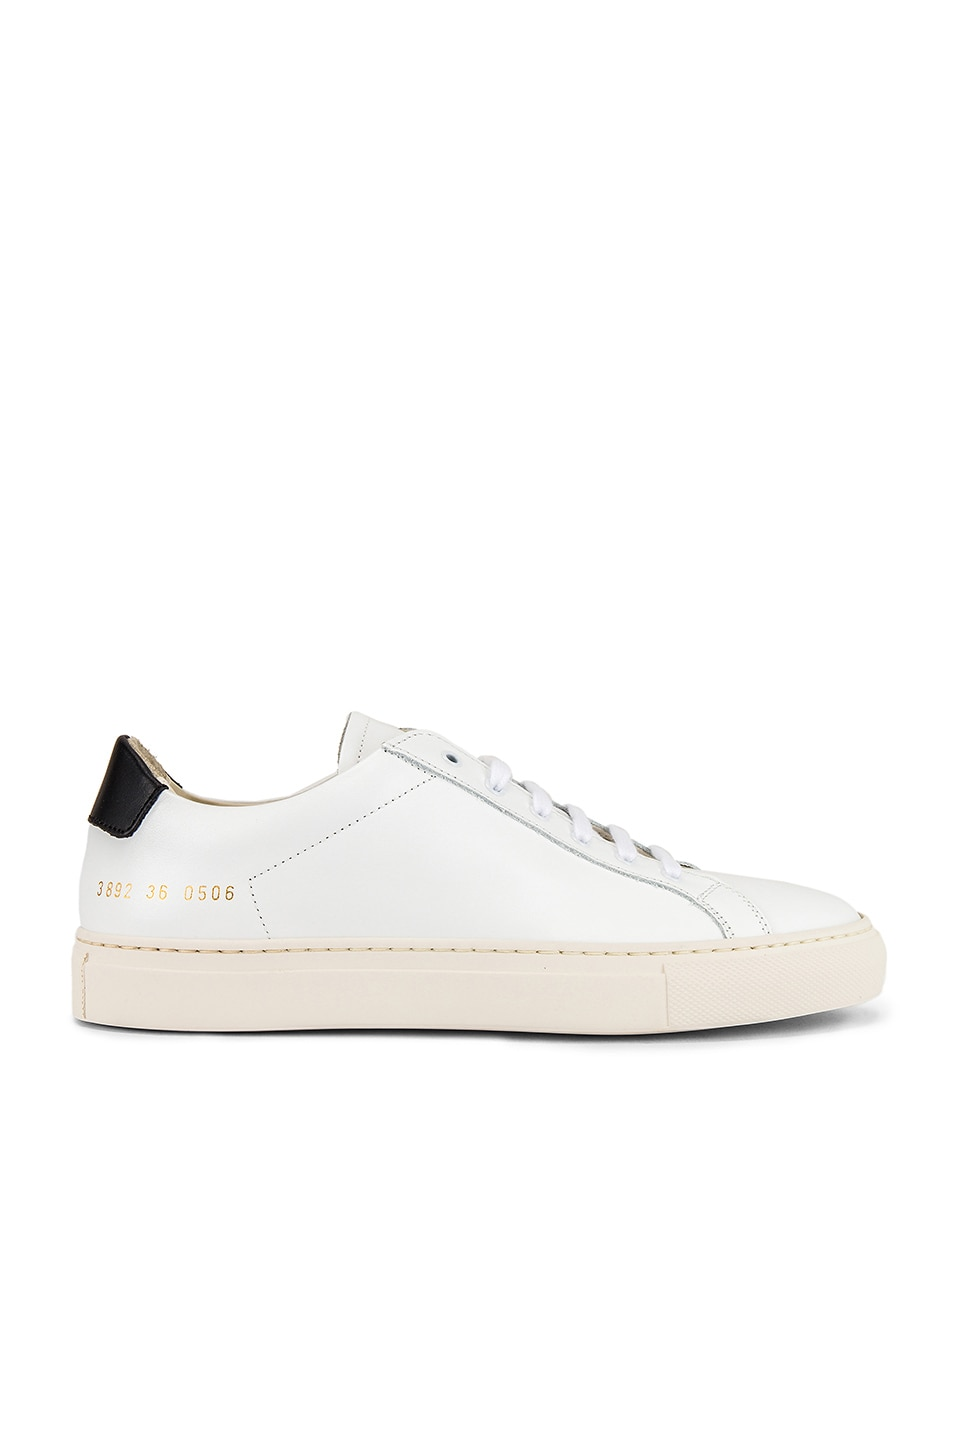 Common Projects Retro Low Sneaker in White & Black